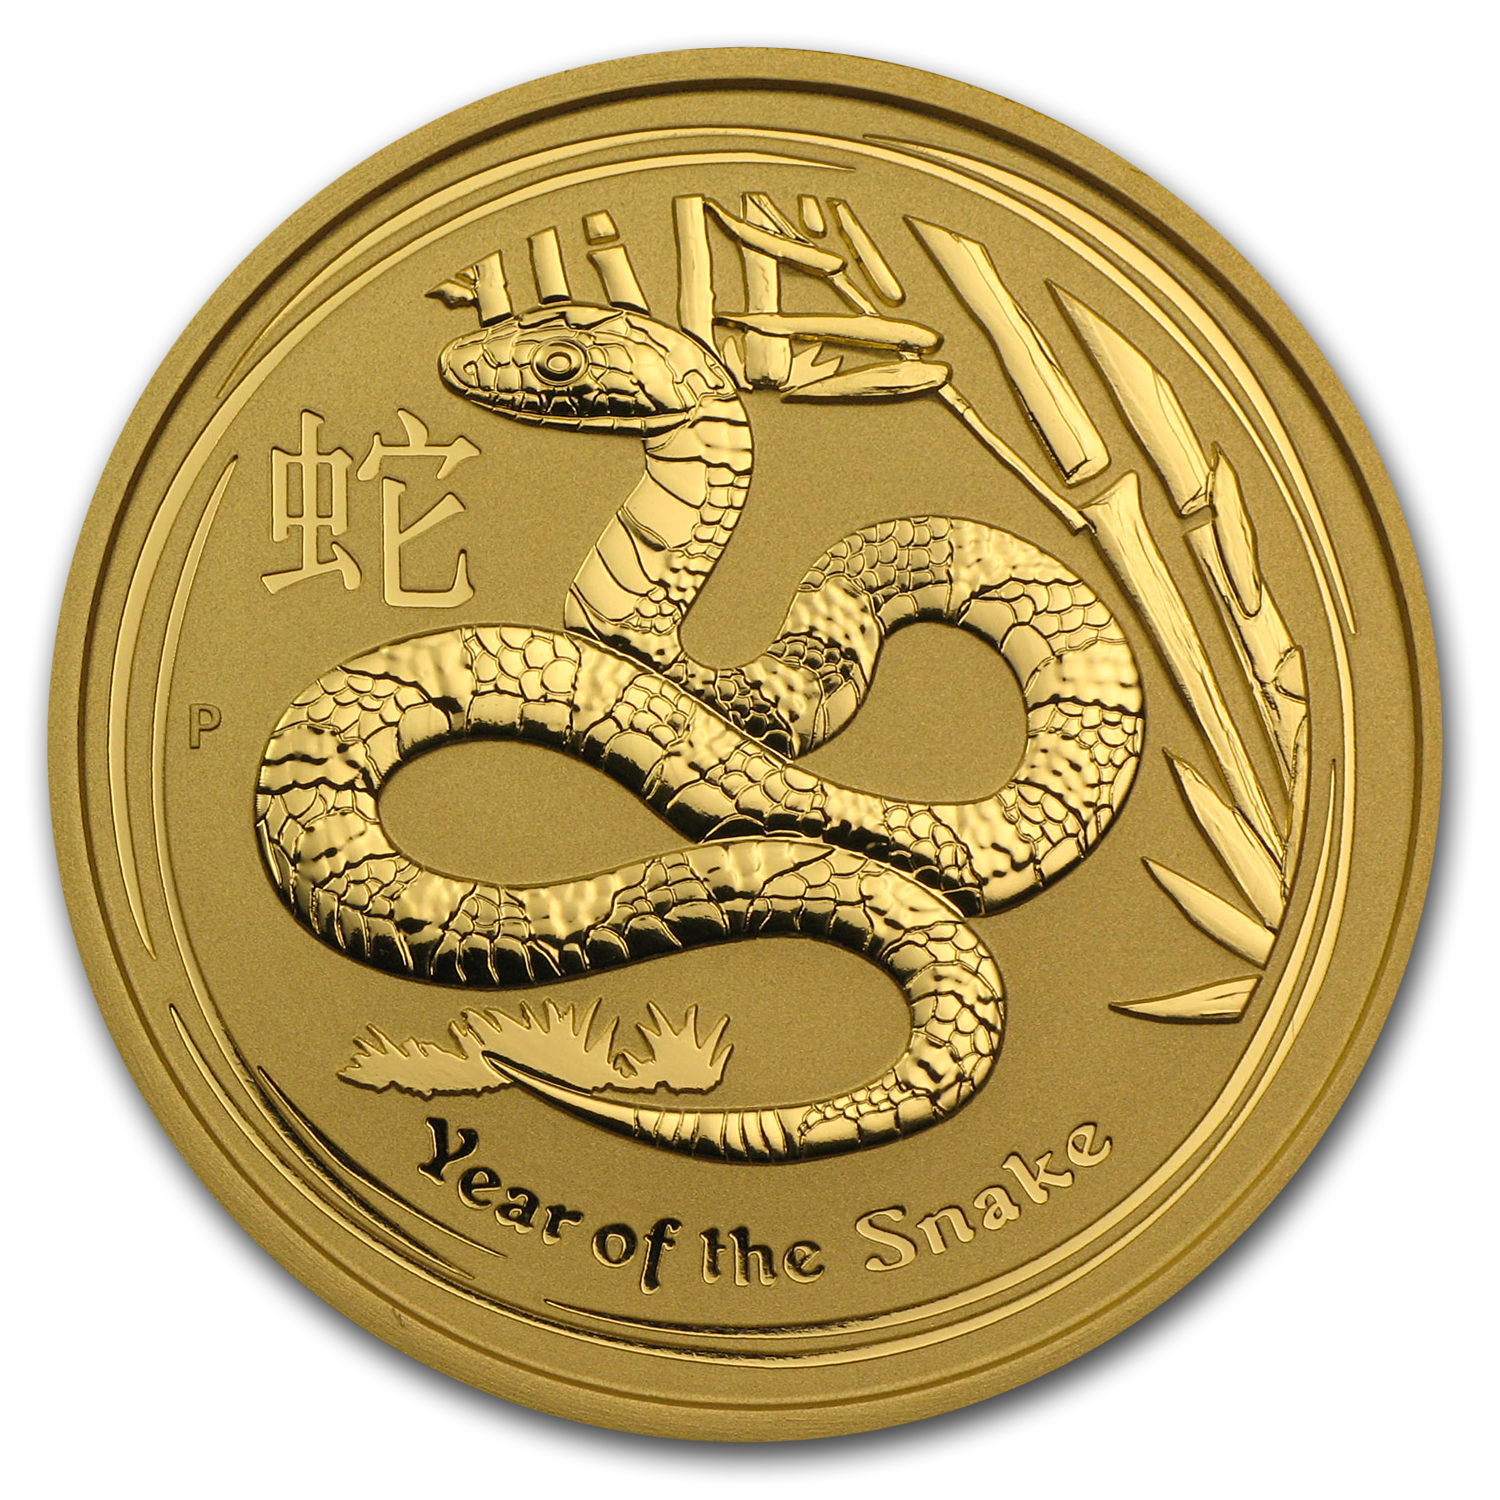 2013 2 oz Gold Lunar Year of the Snake (Series II)